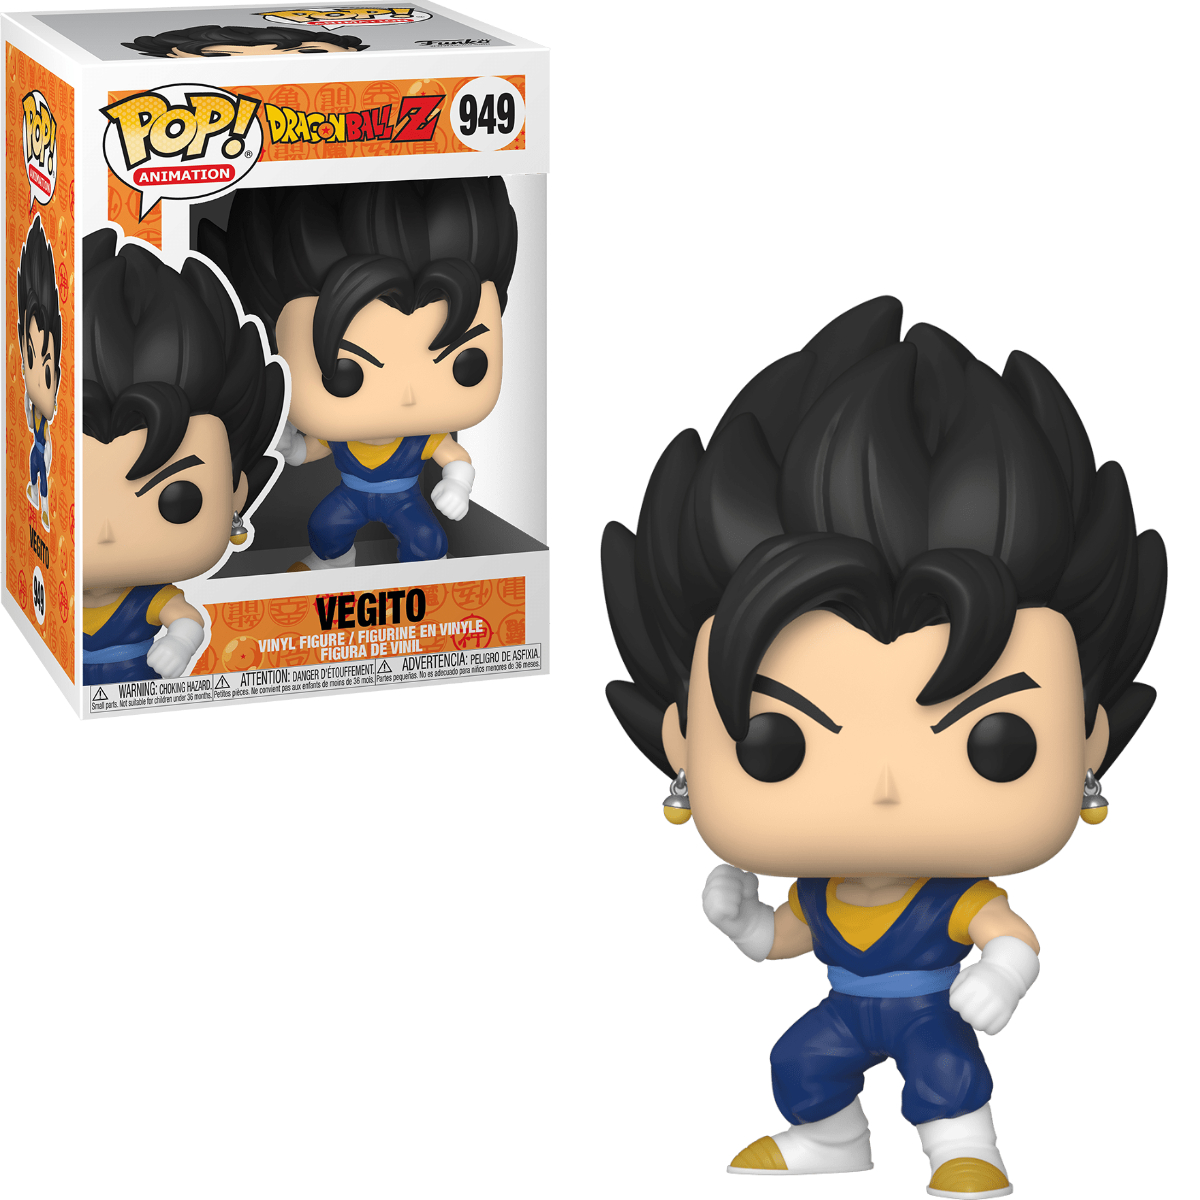 POP! ANIMATION #??? DRAGONBALL Z PVC VEGITO